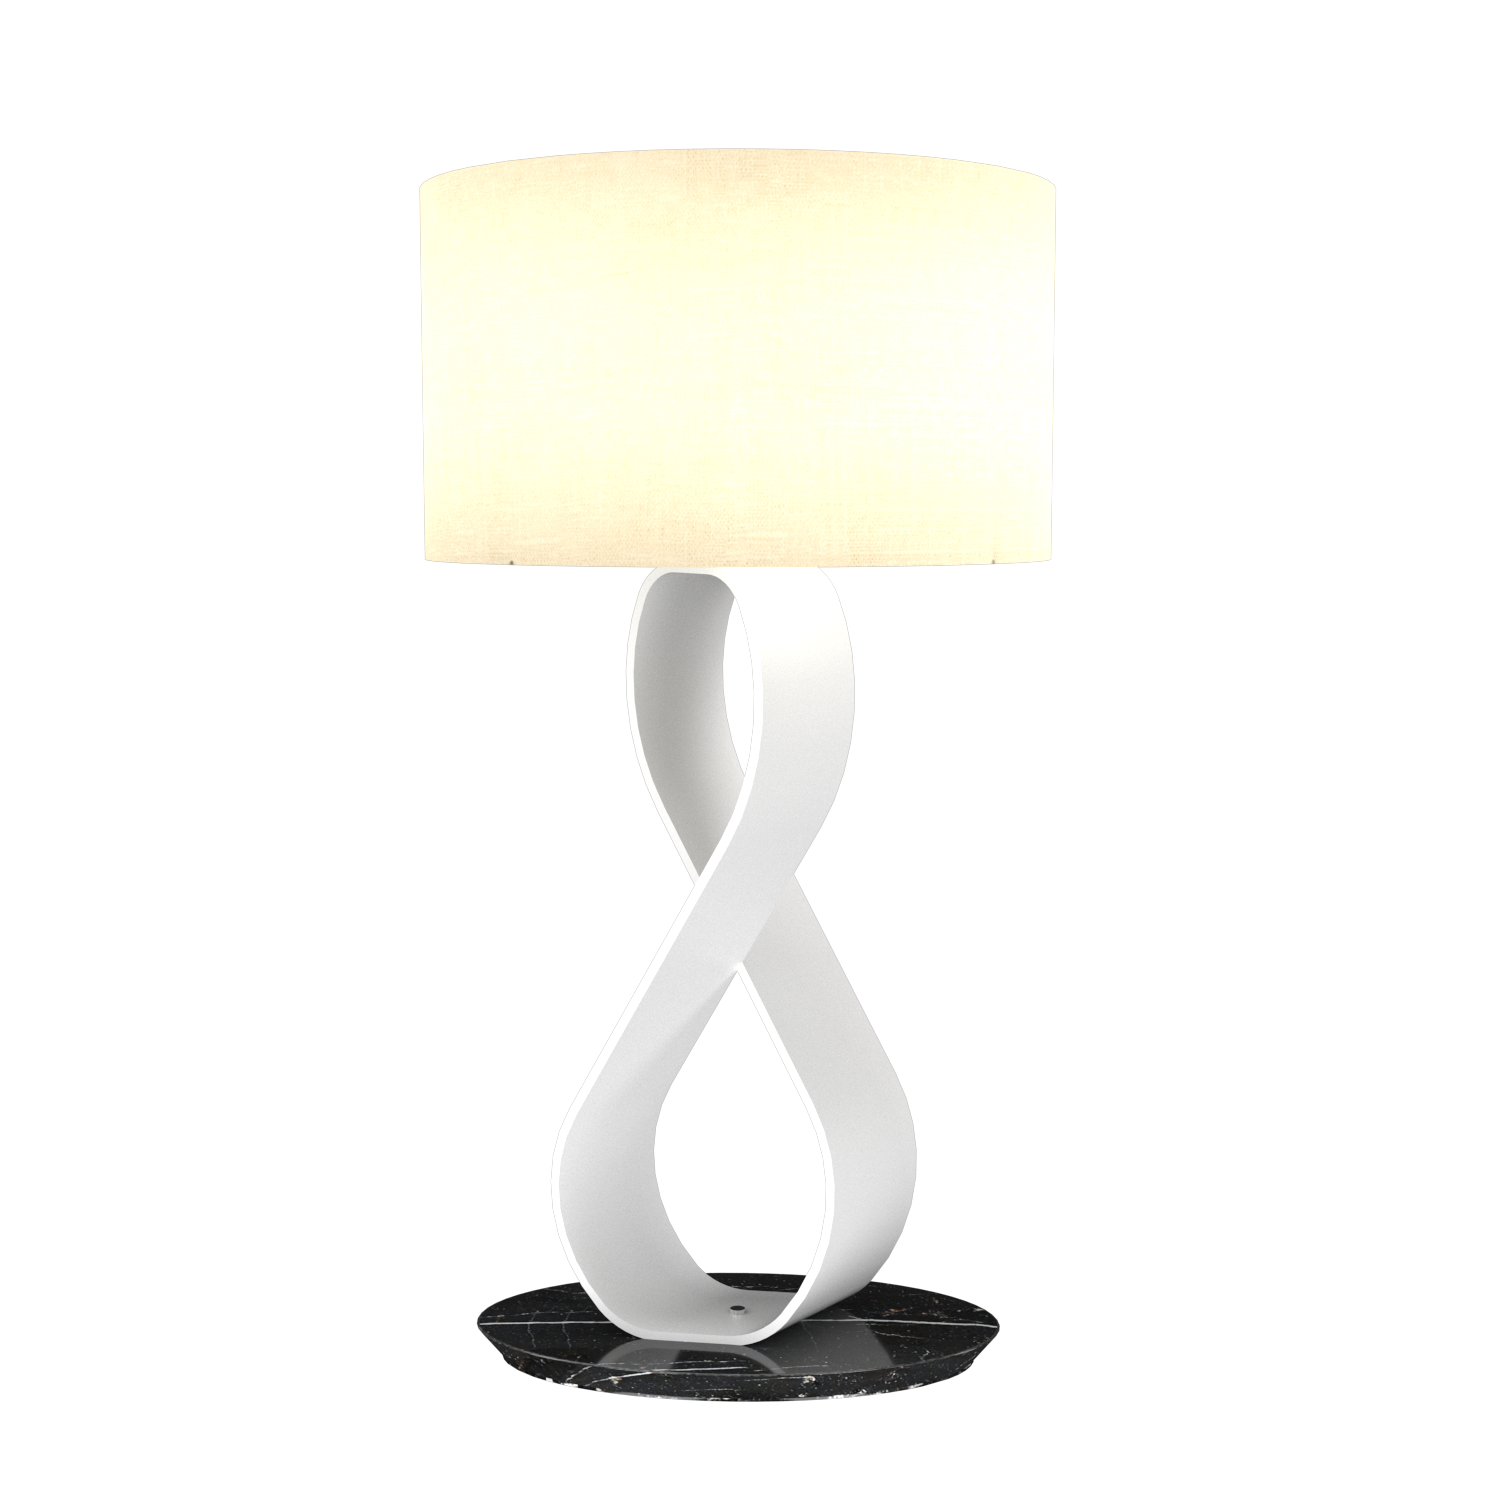 Table Lamp Accord Infinito 7012 - Infinito Line Accord Lighting | 07. White